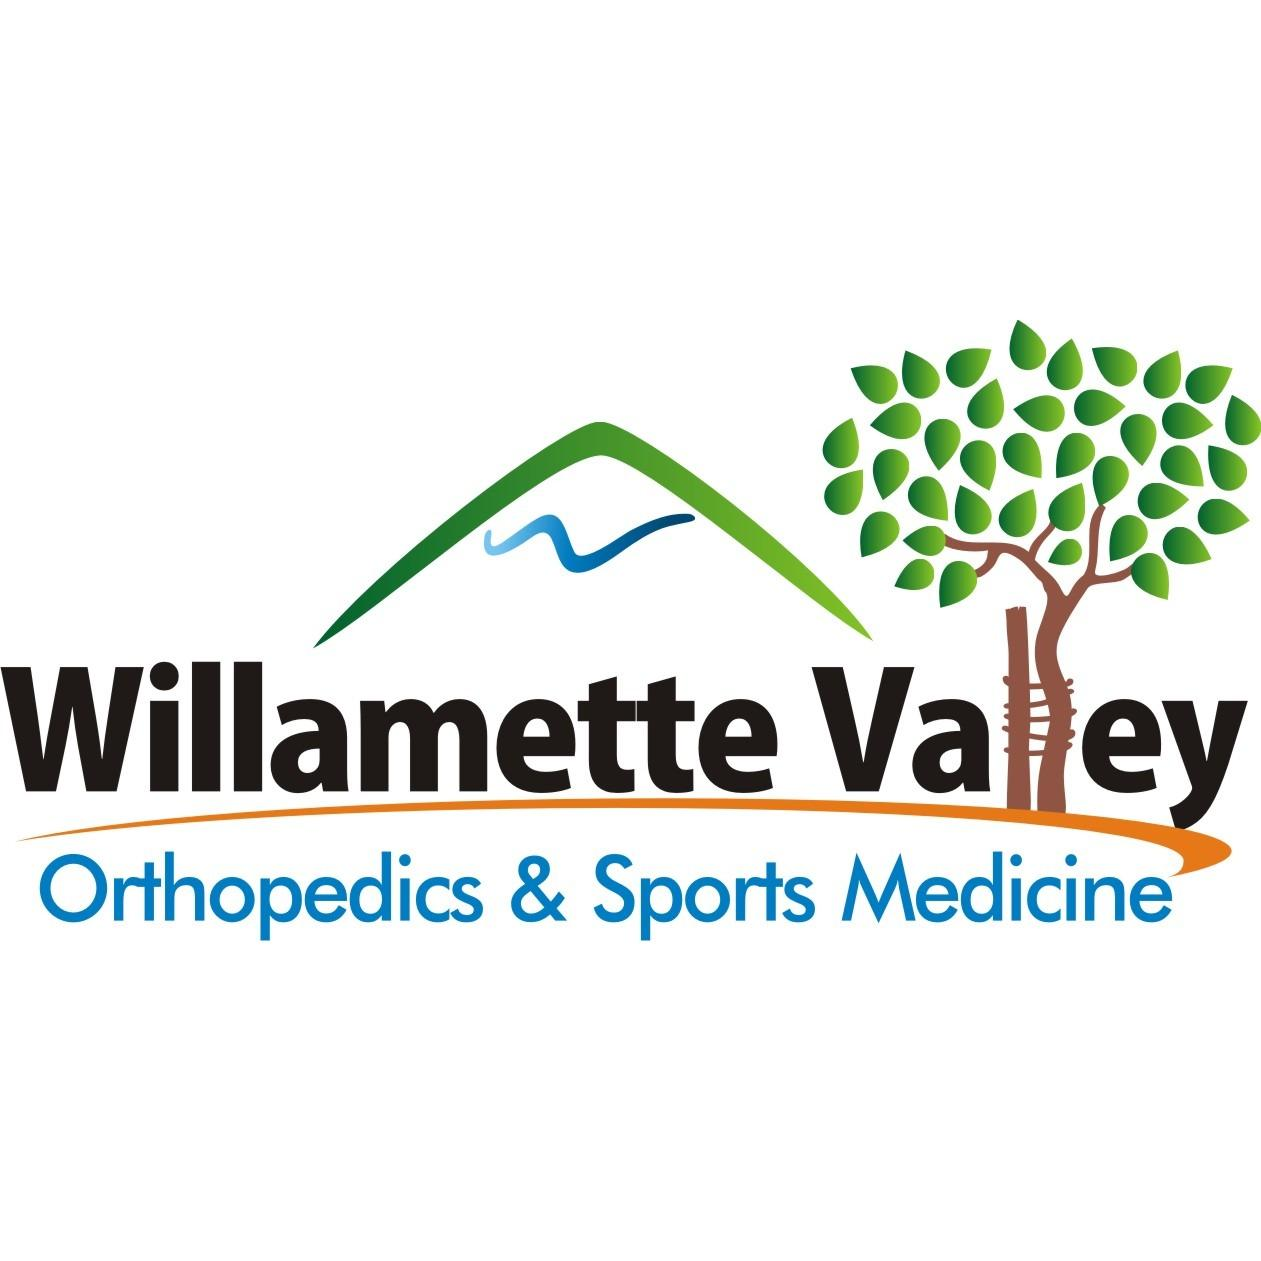 Willamette Valley Orthopedics & Sports Medicine image 0